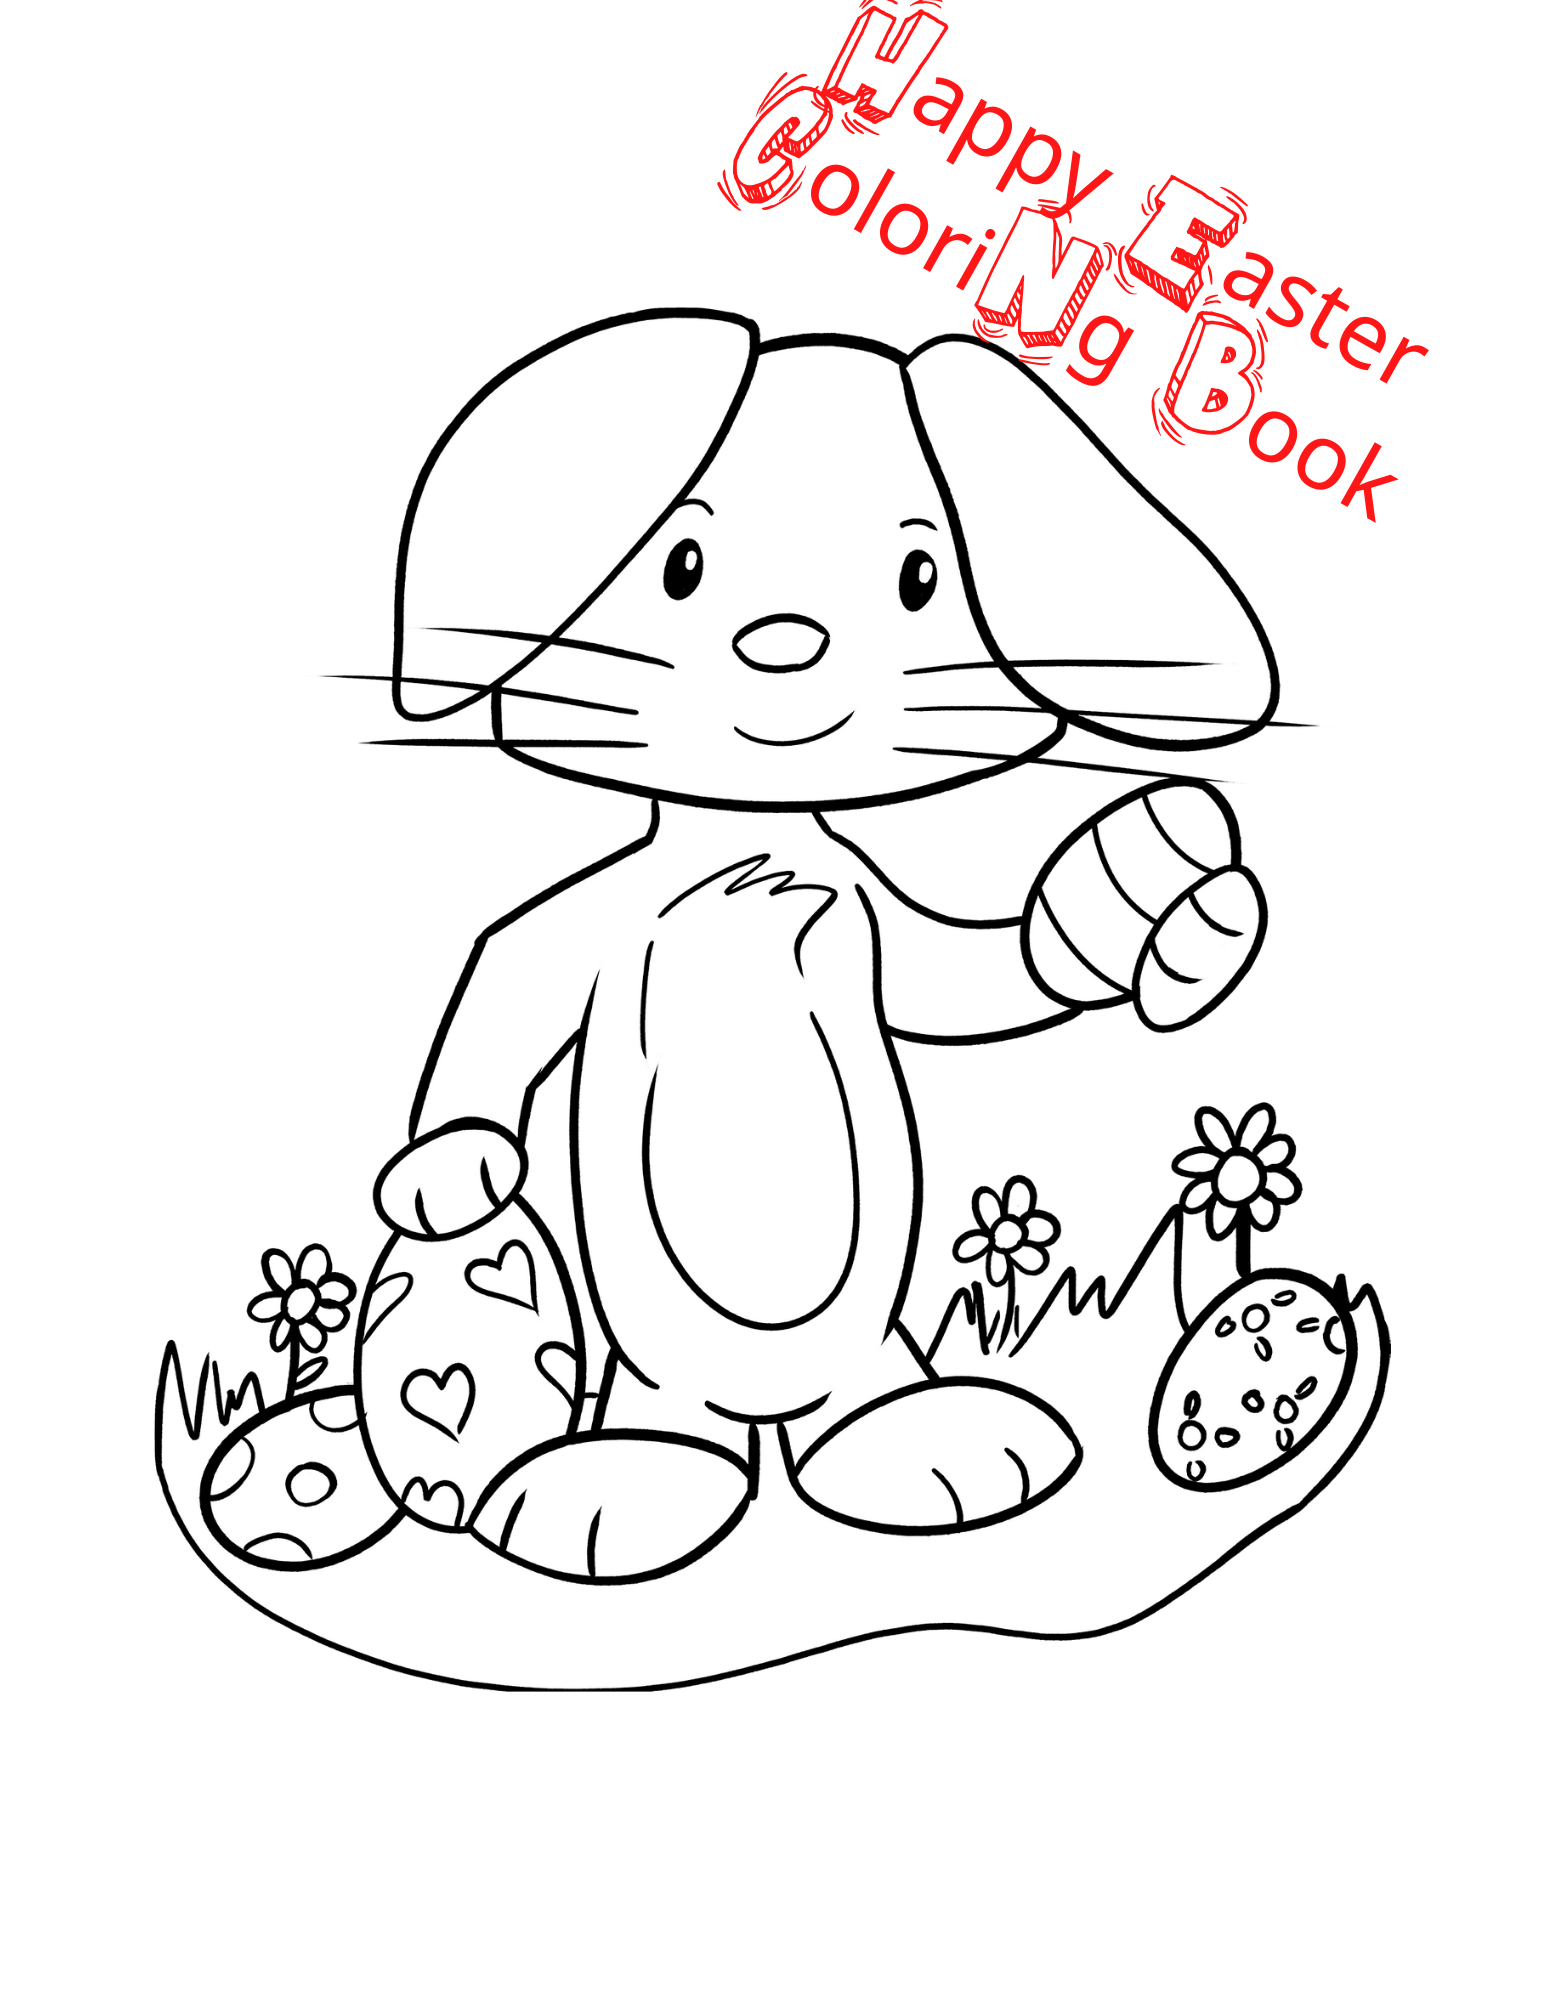 Easter Bunny Coloring Book For Kids In 2020 Toddler Coloring Book Easter Coloring Book Easter Bunny Colouring